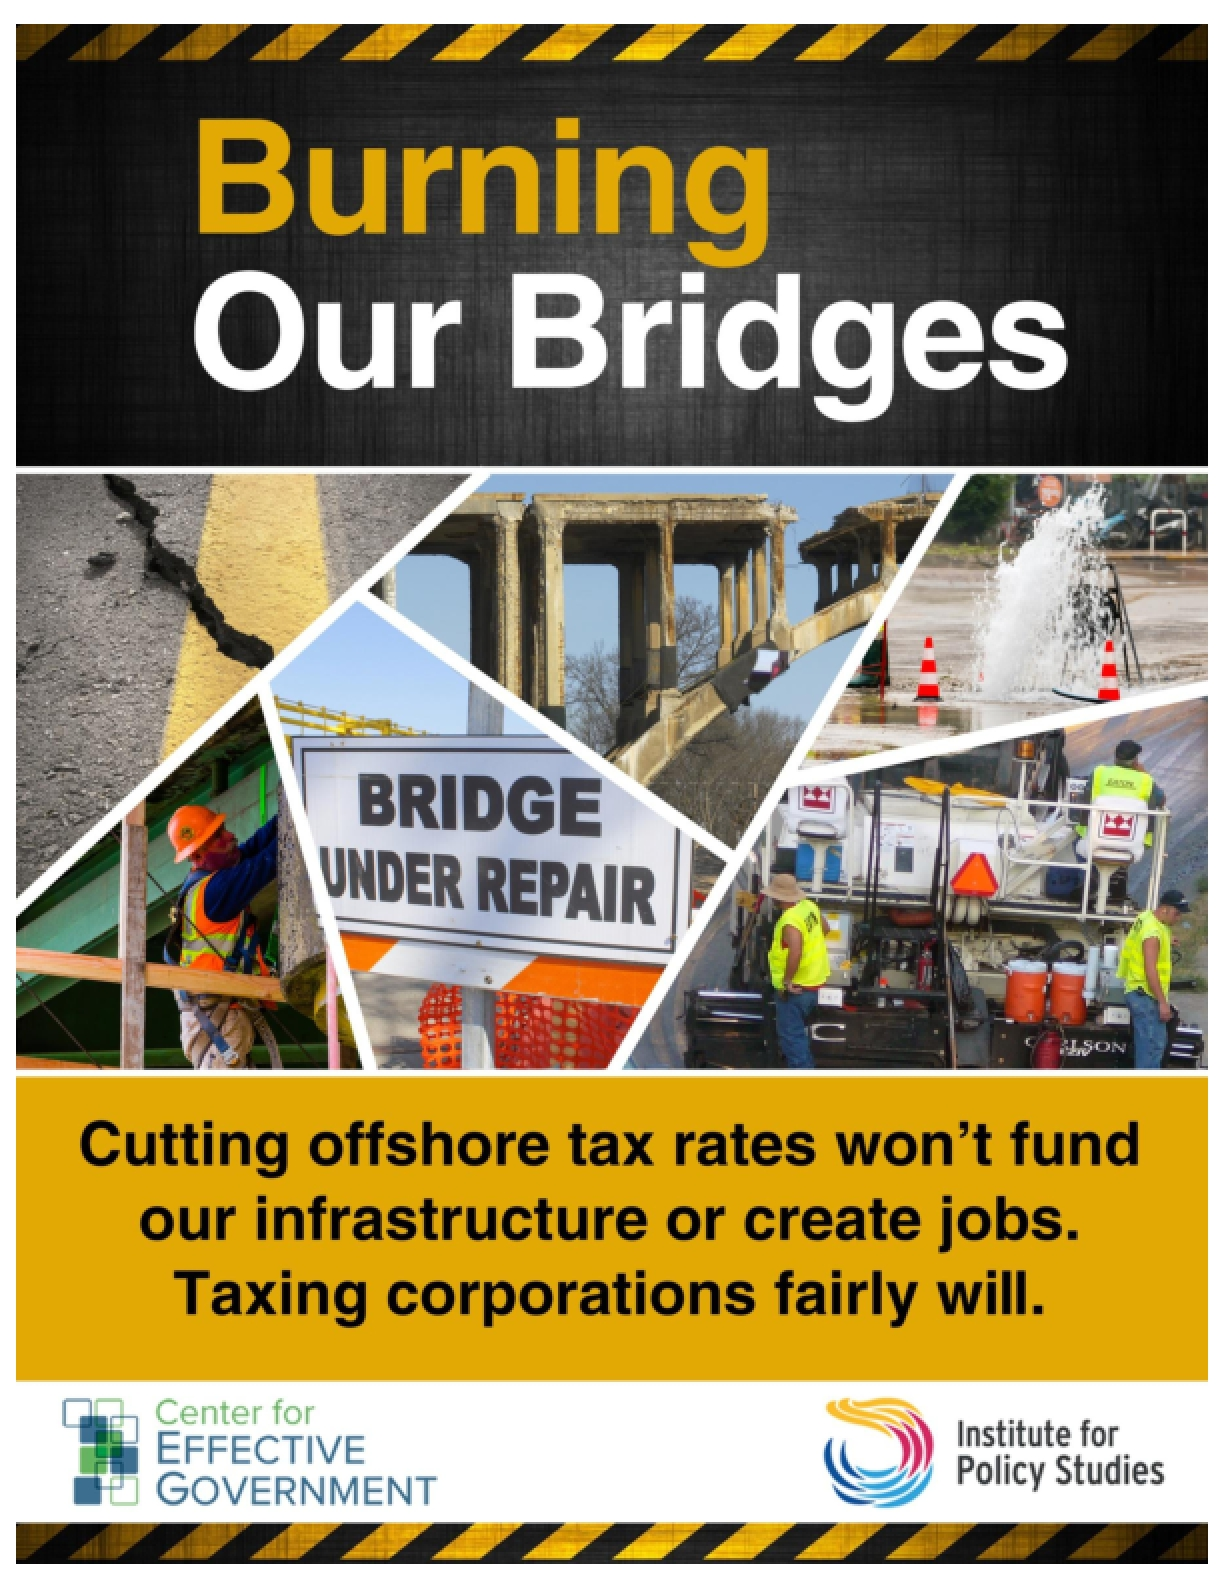 Burning Our Bridges: Cutting Offshore Tax Rates Won't Fund Our Infrastructure or Create Jobs